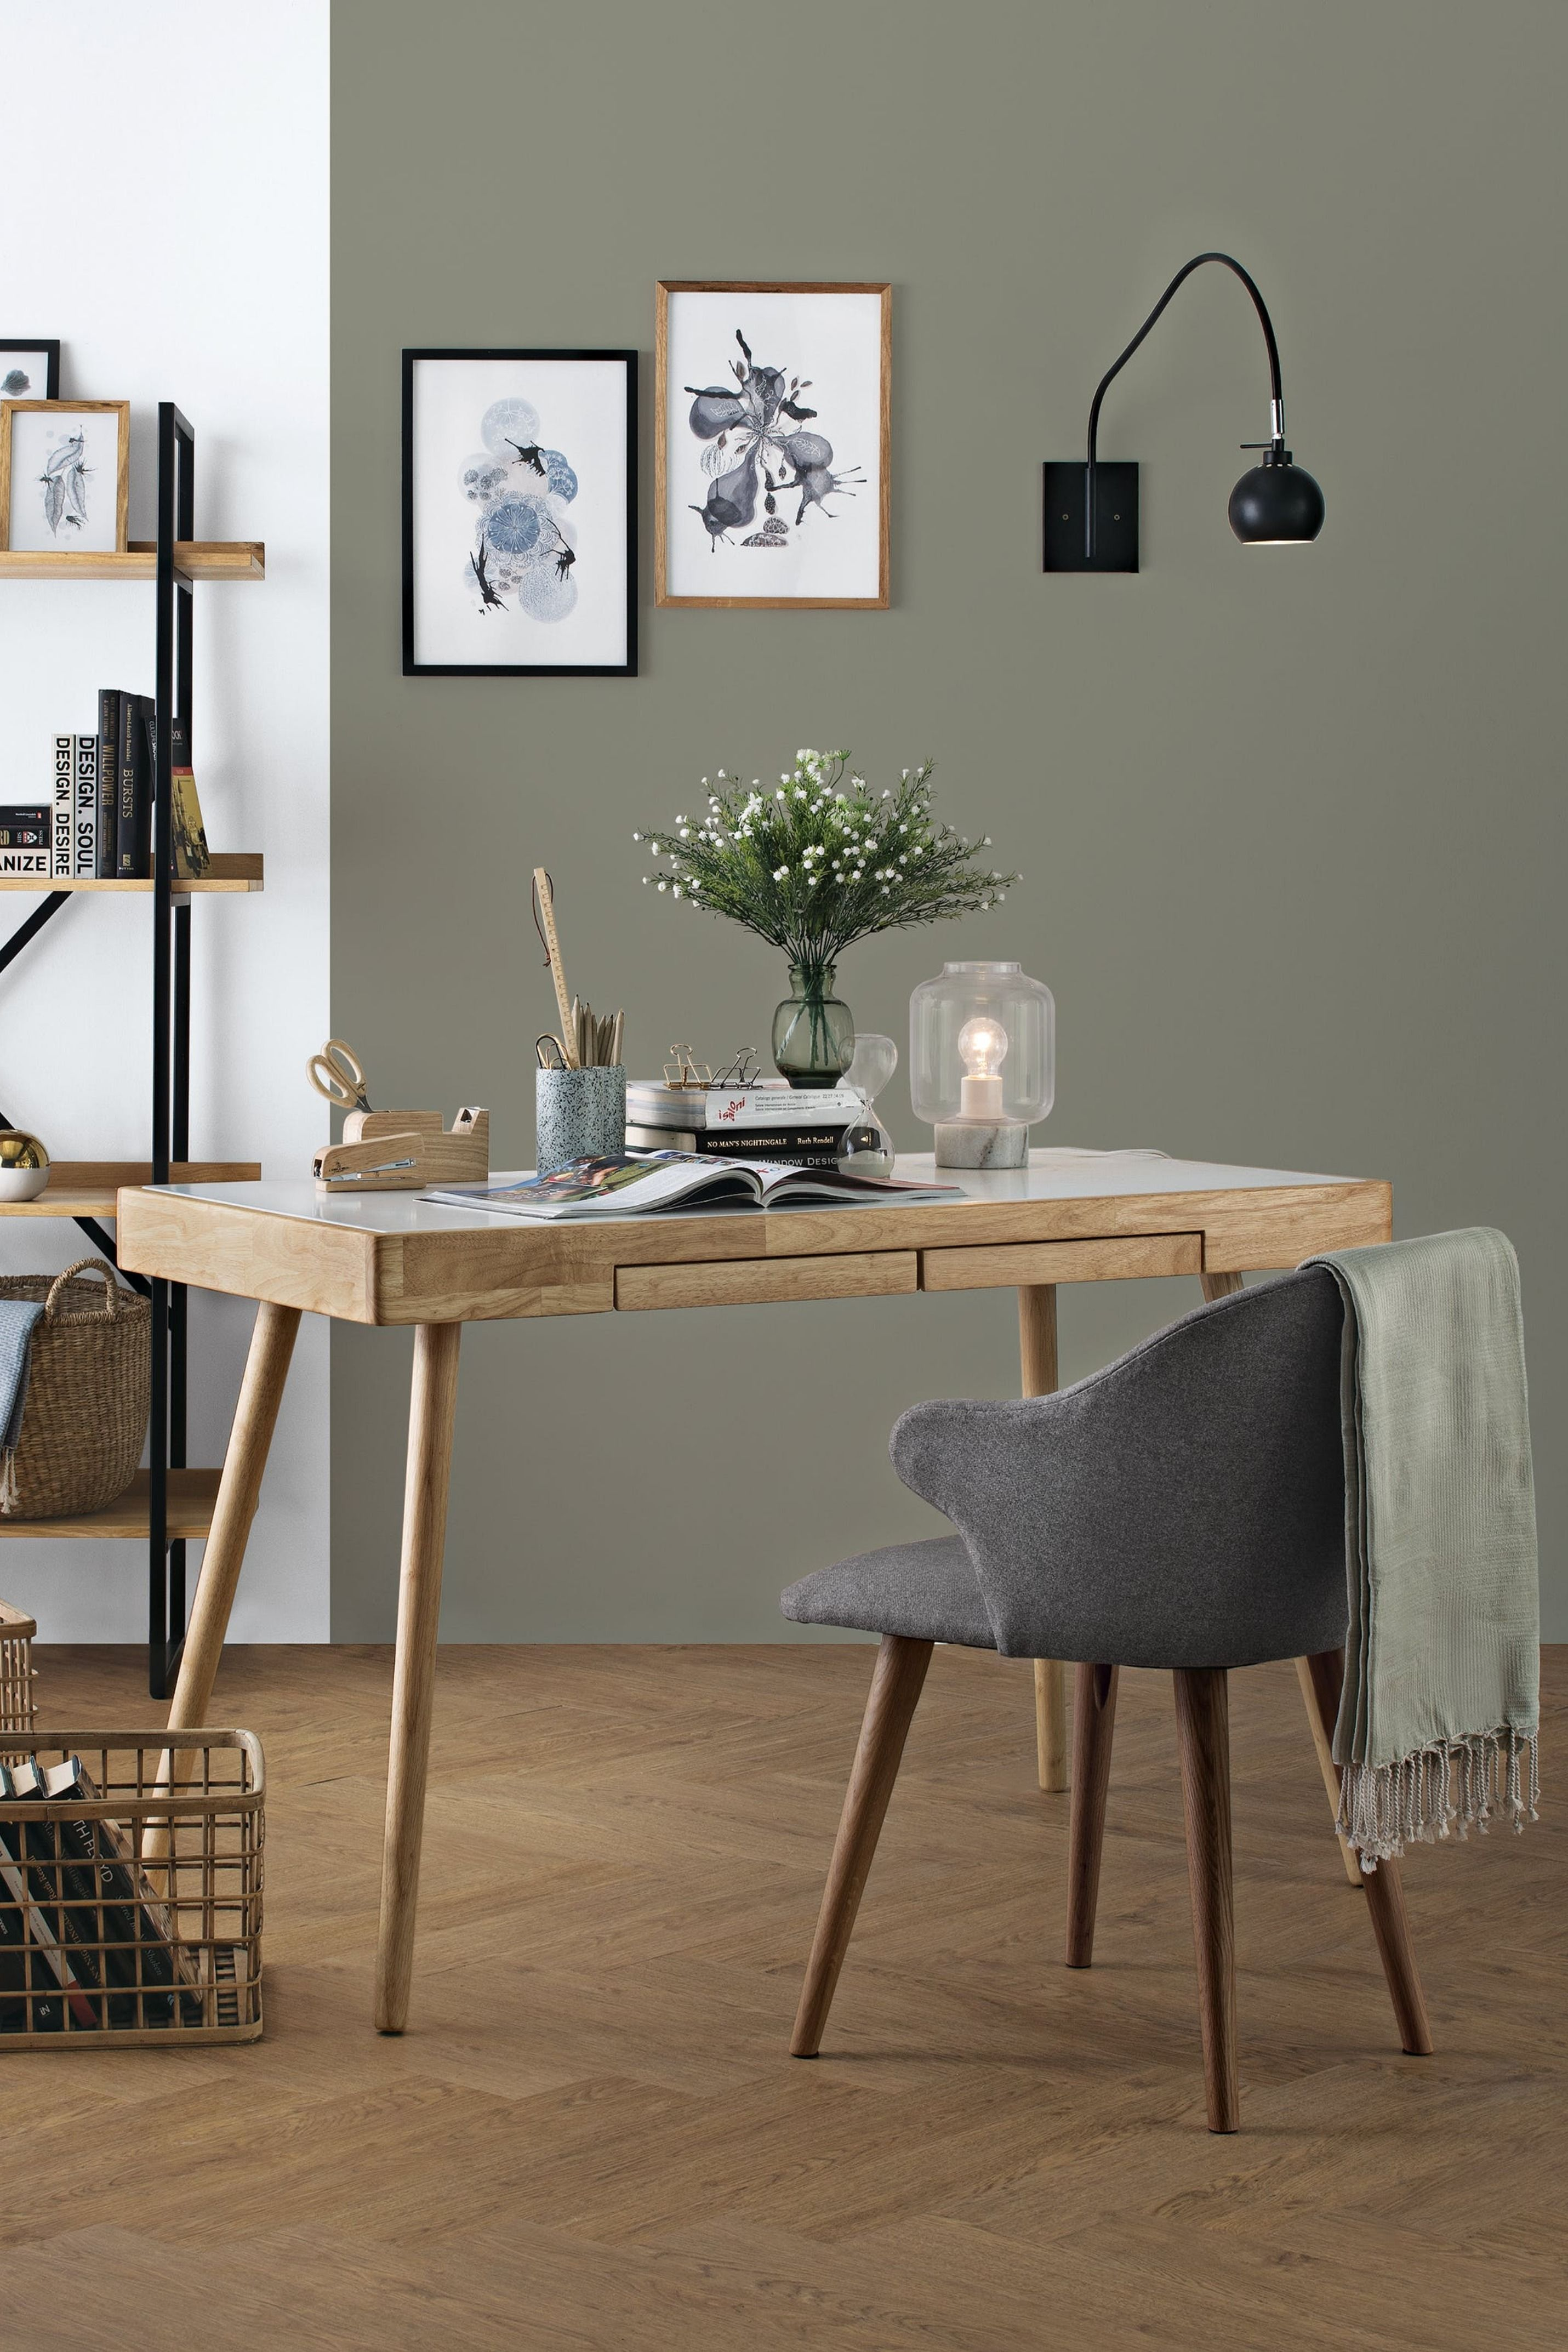 Reth Writing Desk Scandinavian Style Hipvan Home Office Furniture Scandinavian Style Desk Furniture